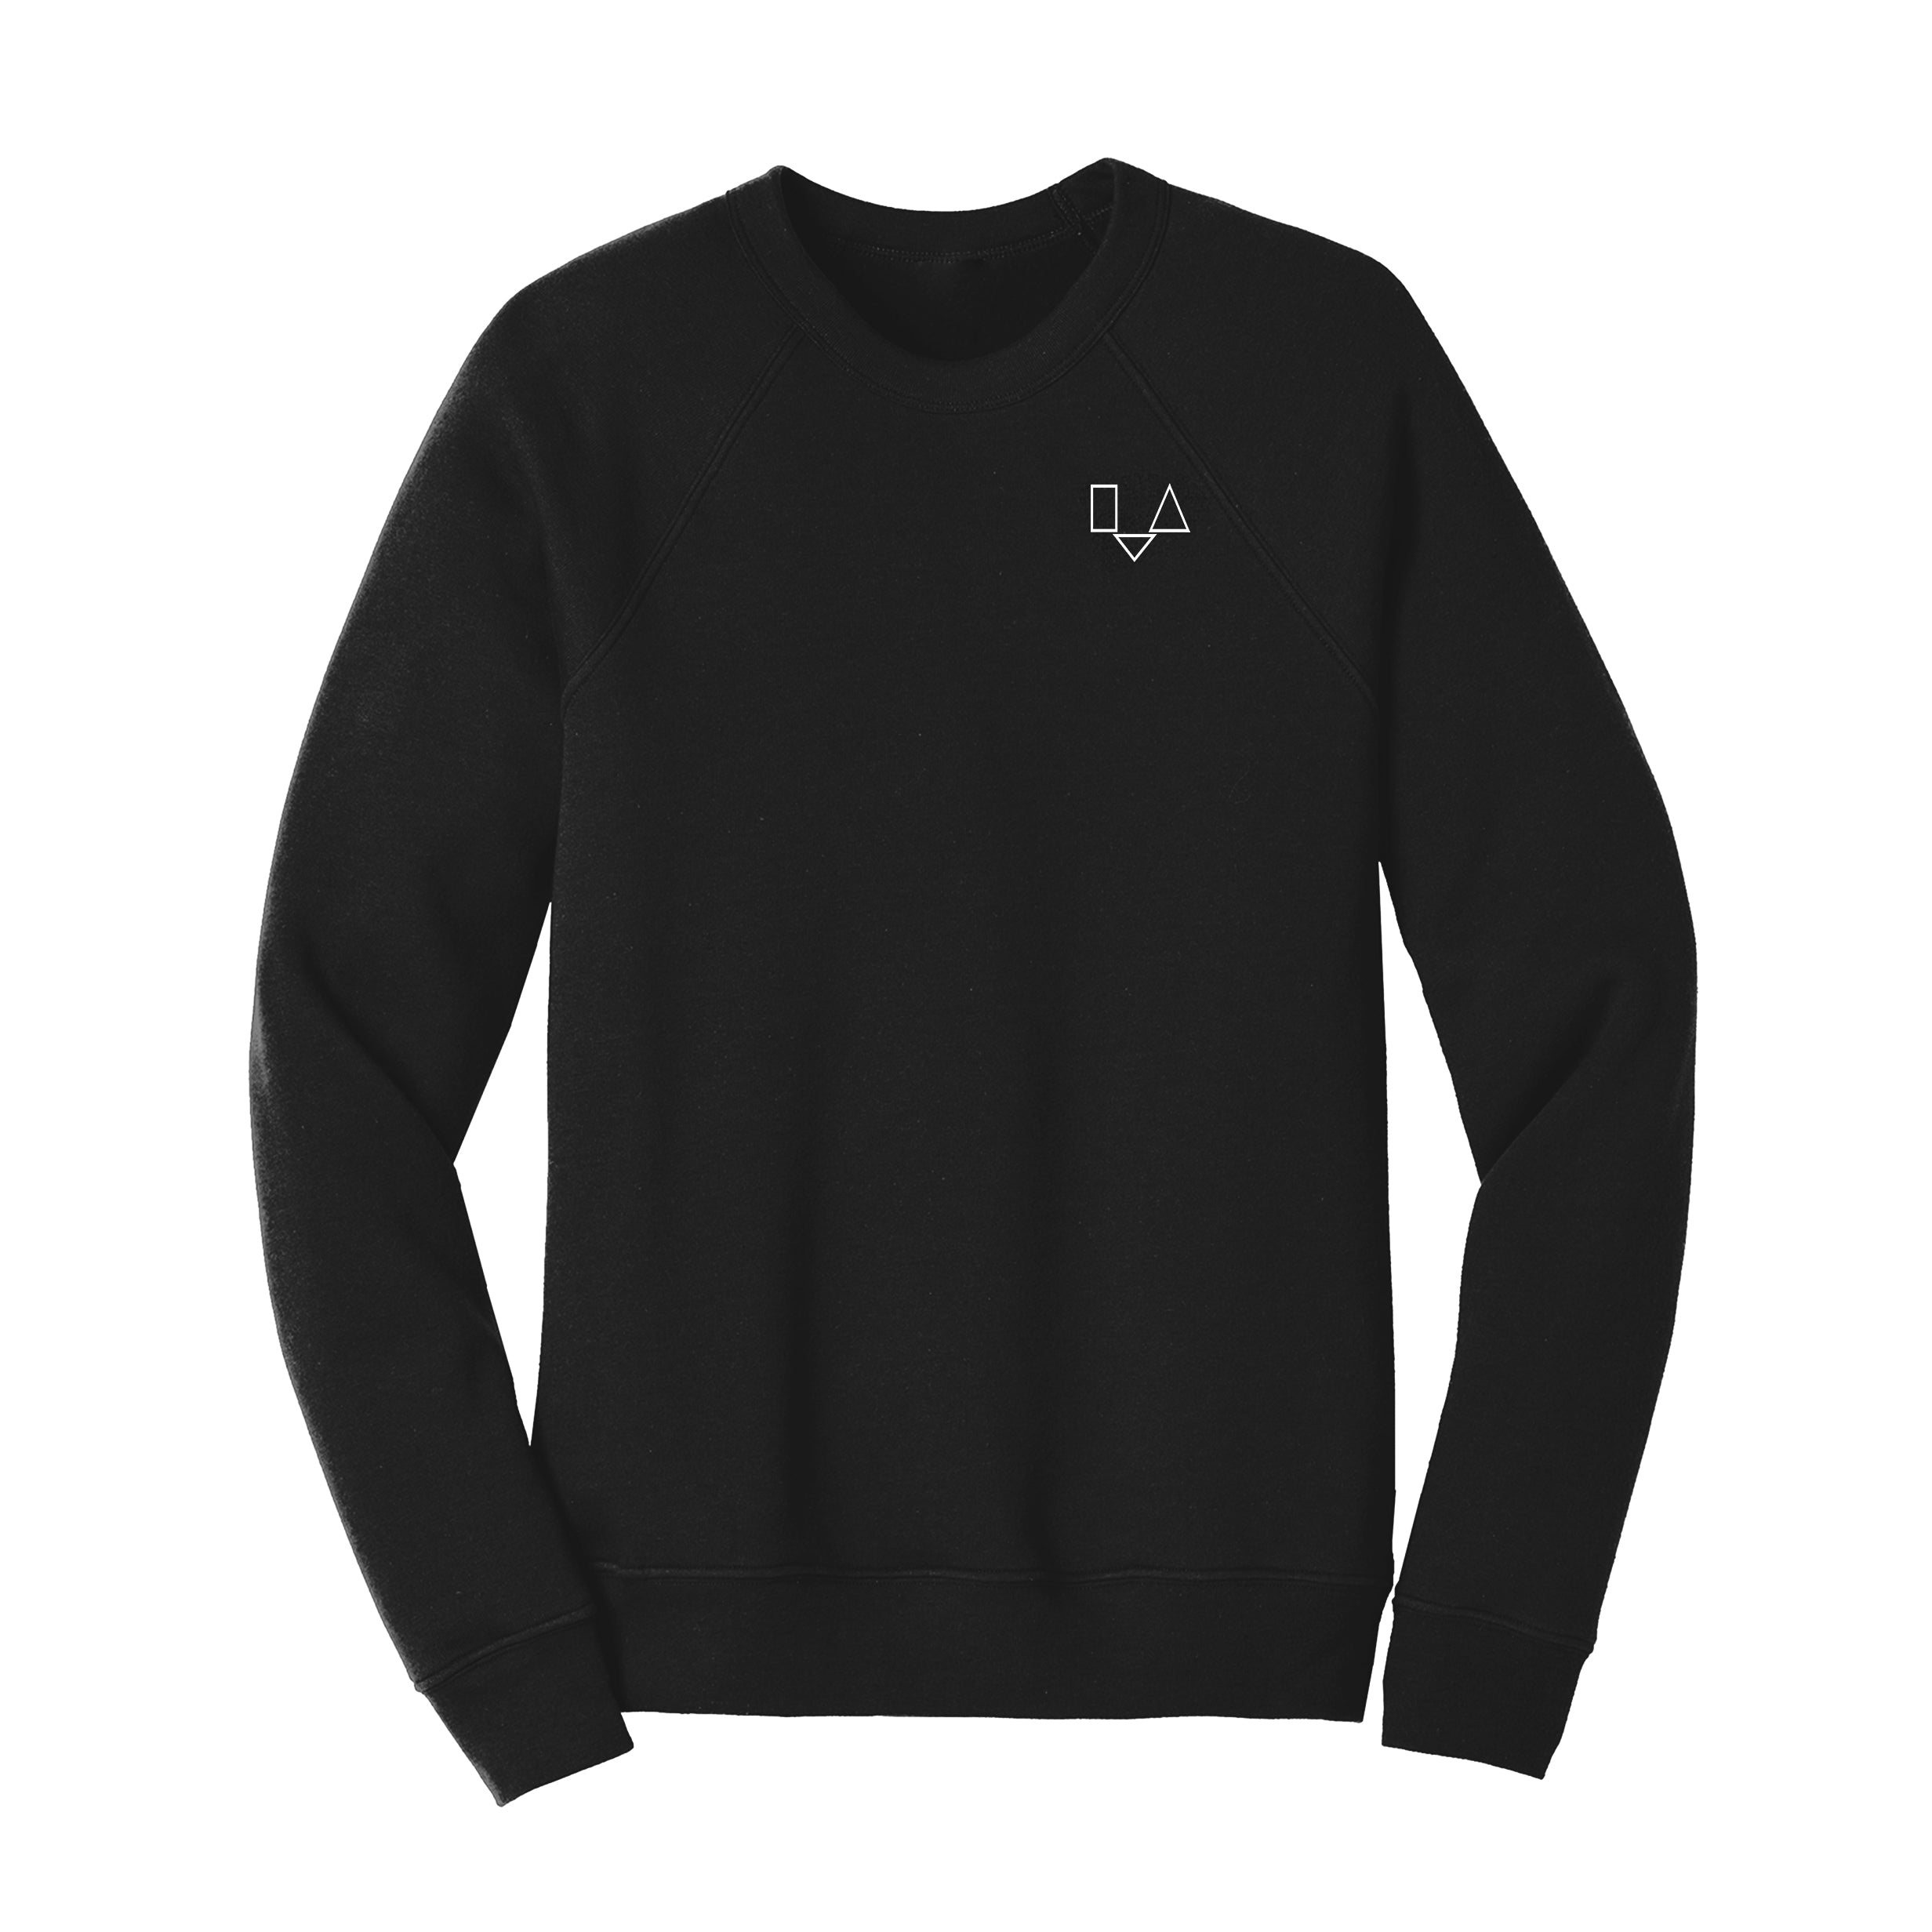 It's Hip To Be Square - Sweatshirt